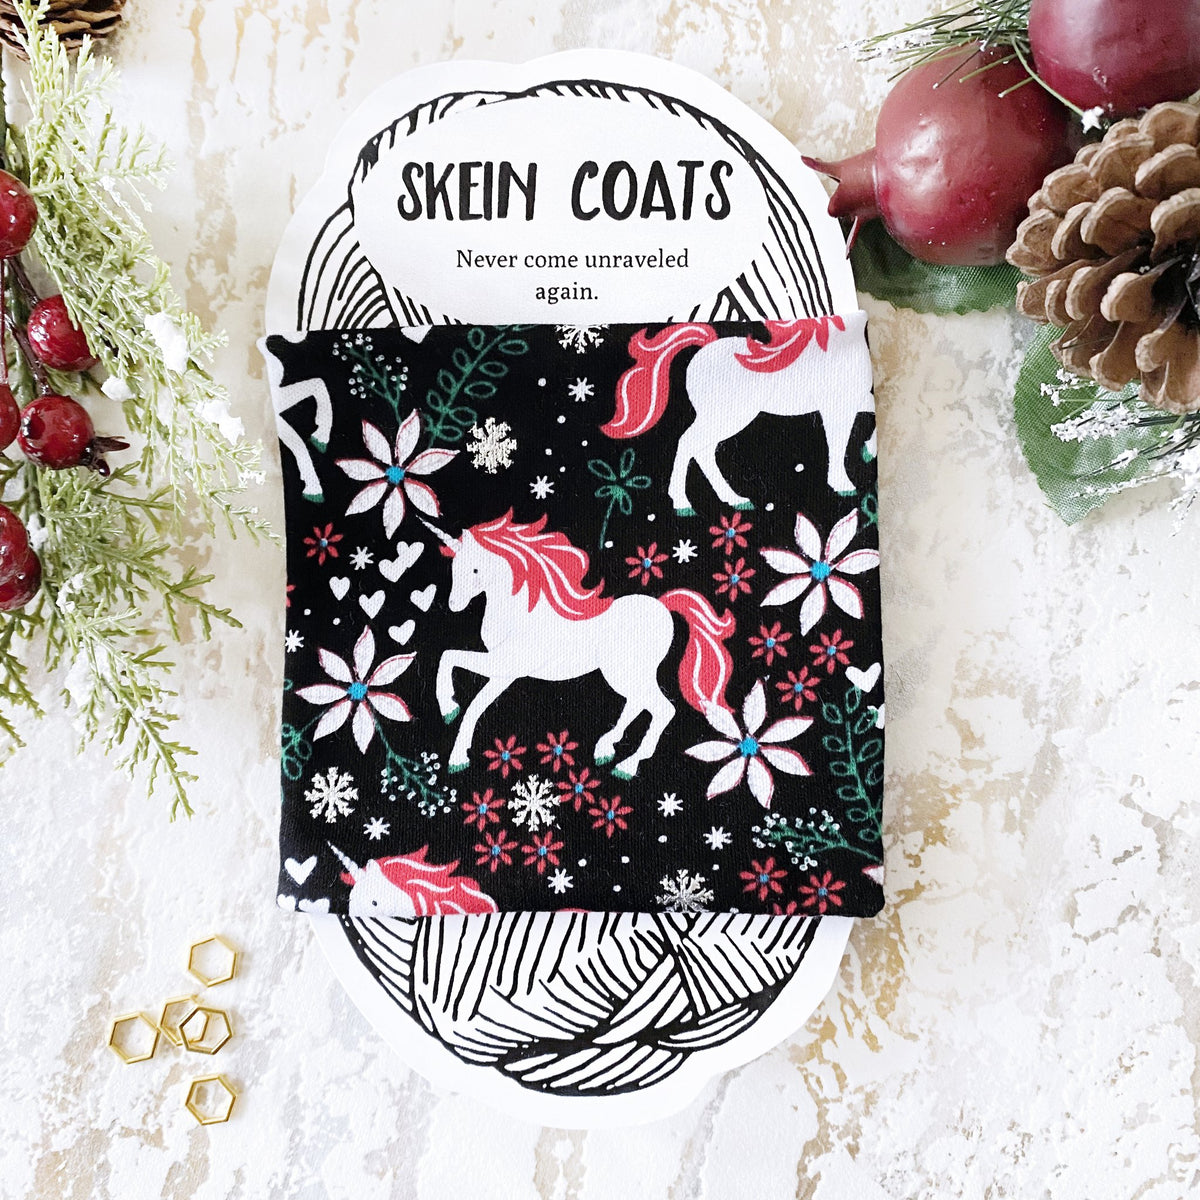 Skein Coats ♥ Your yarn will never come unraveled again